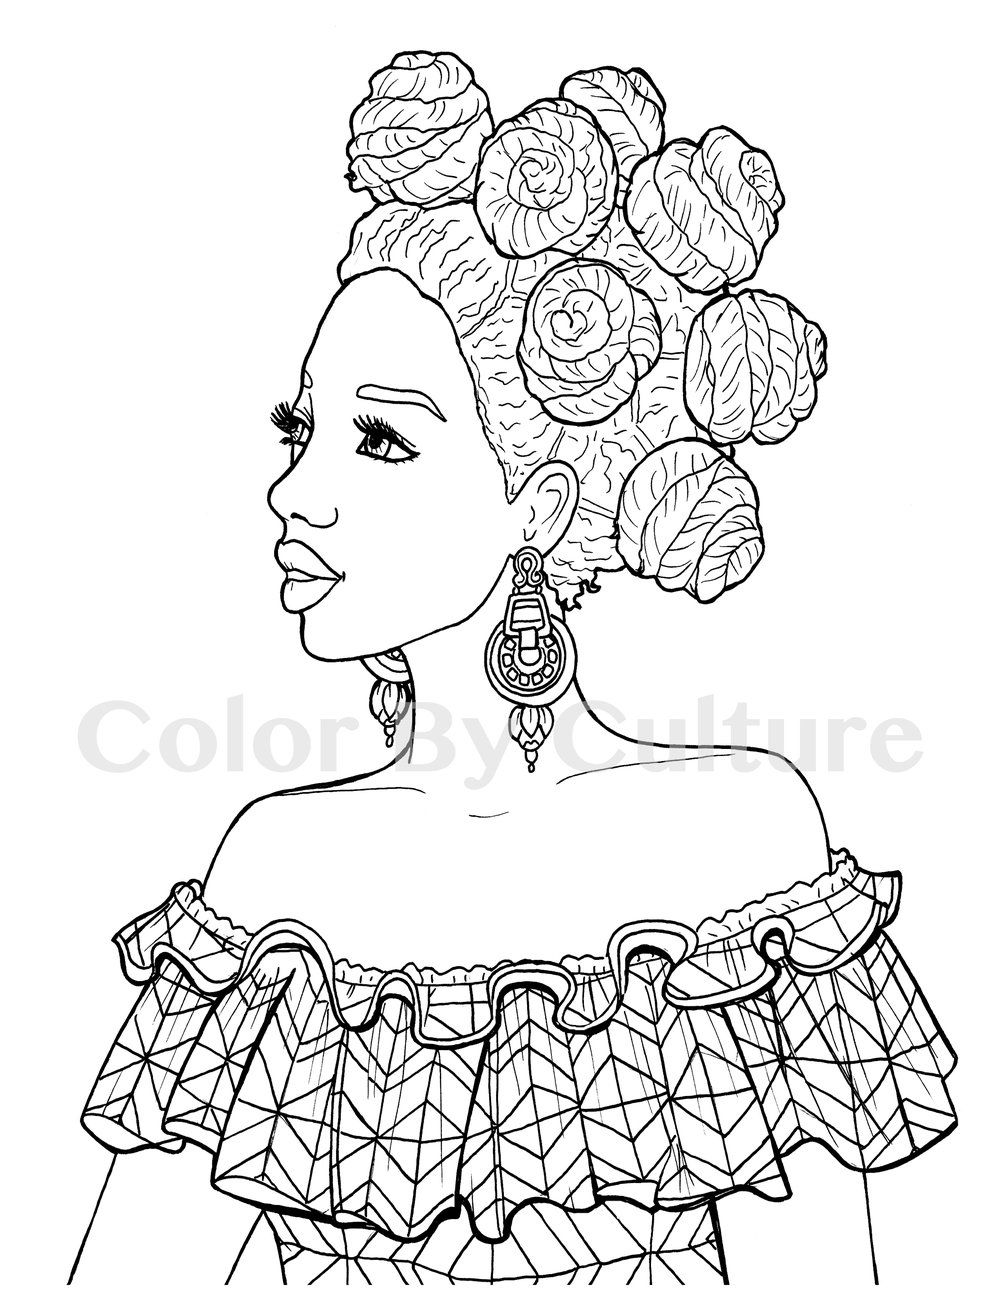 Printable Coloring Book - African Fashions | Adult Colouring ...